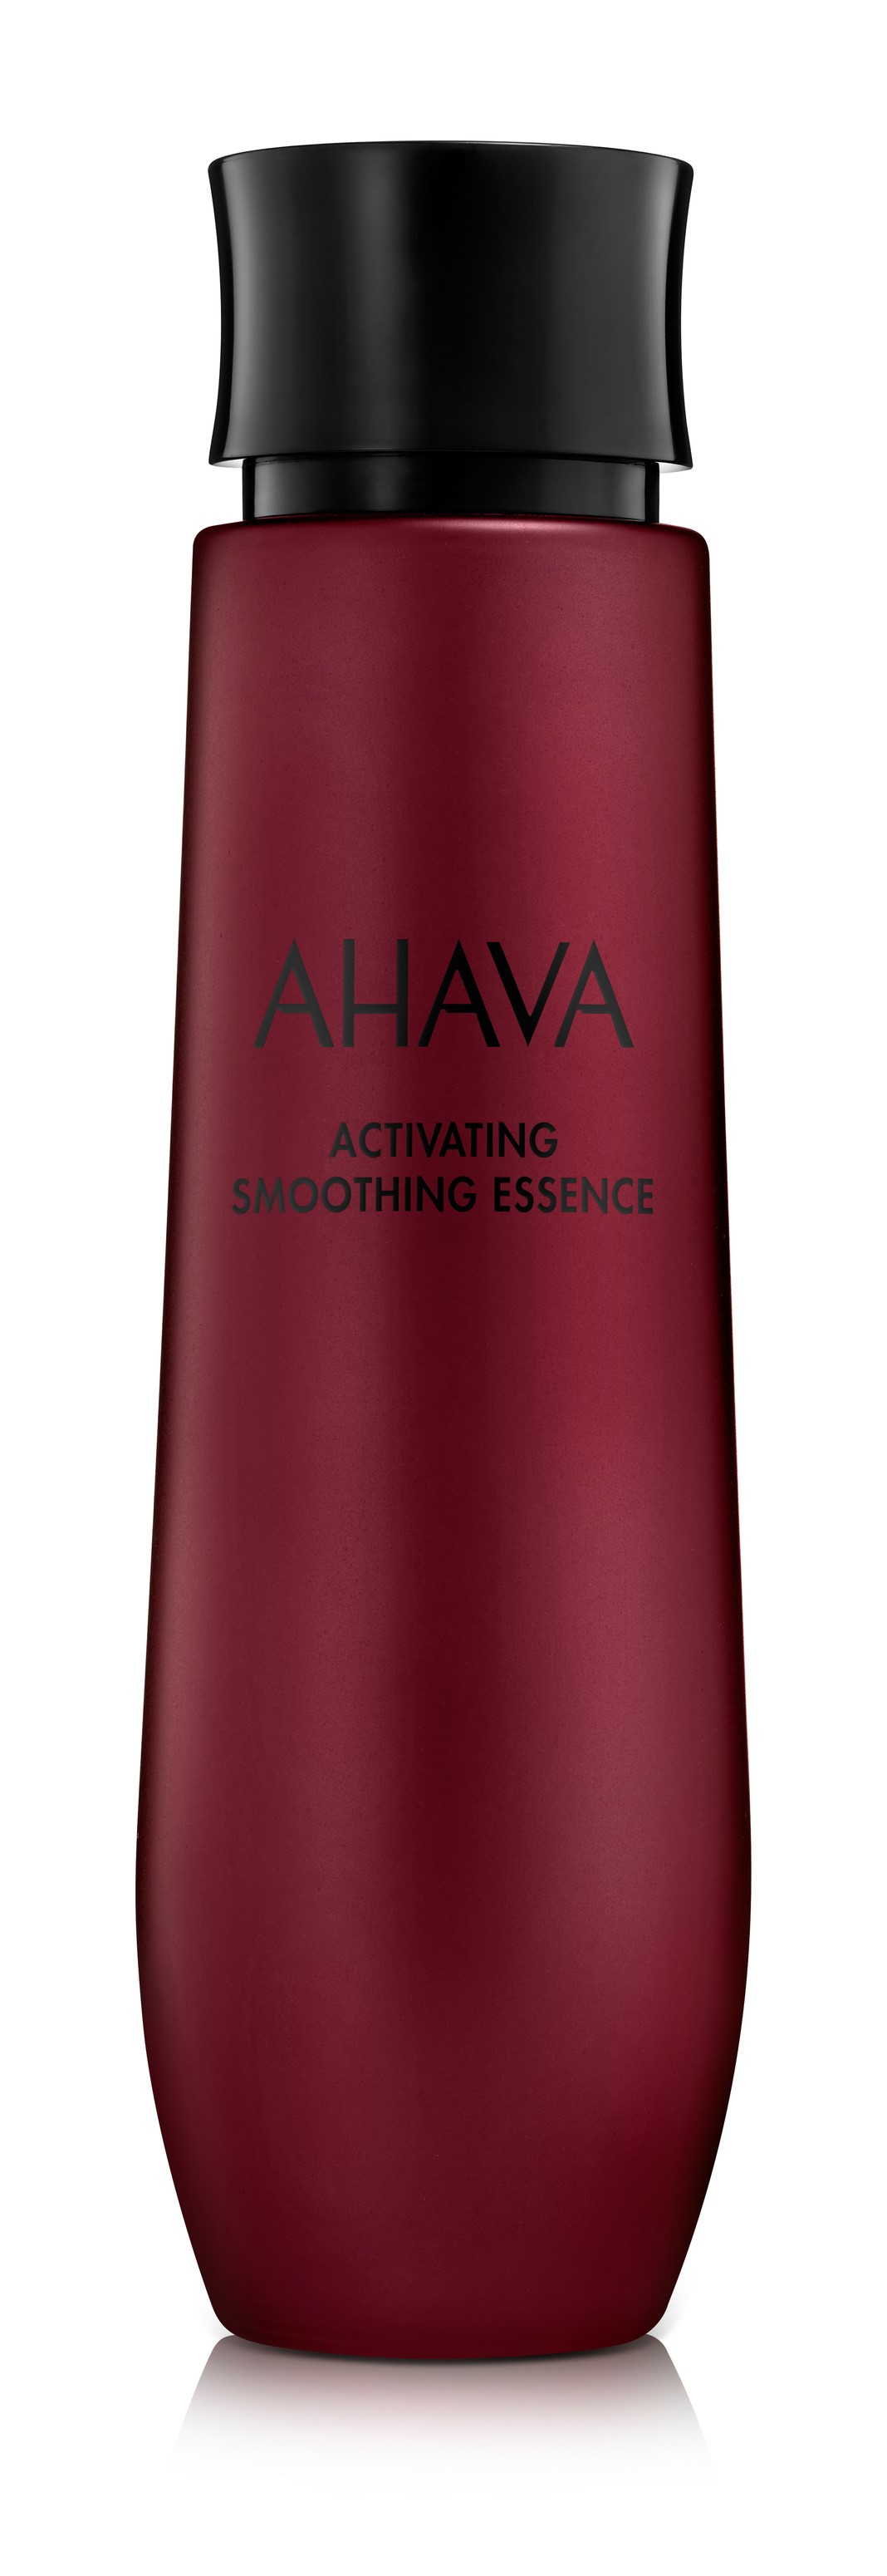 aha59.03b ahava apple of sodom activating smoothing essence